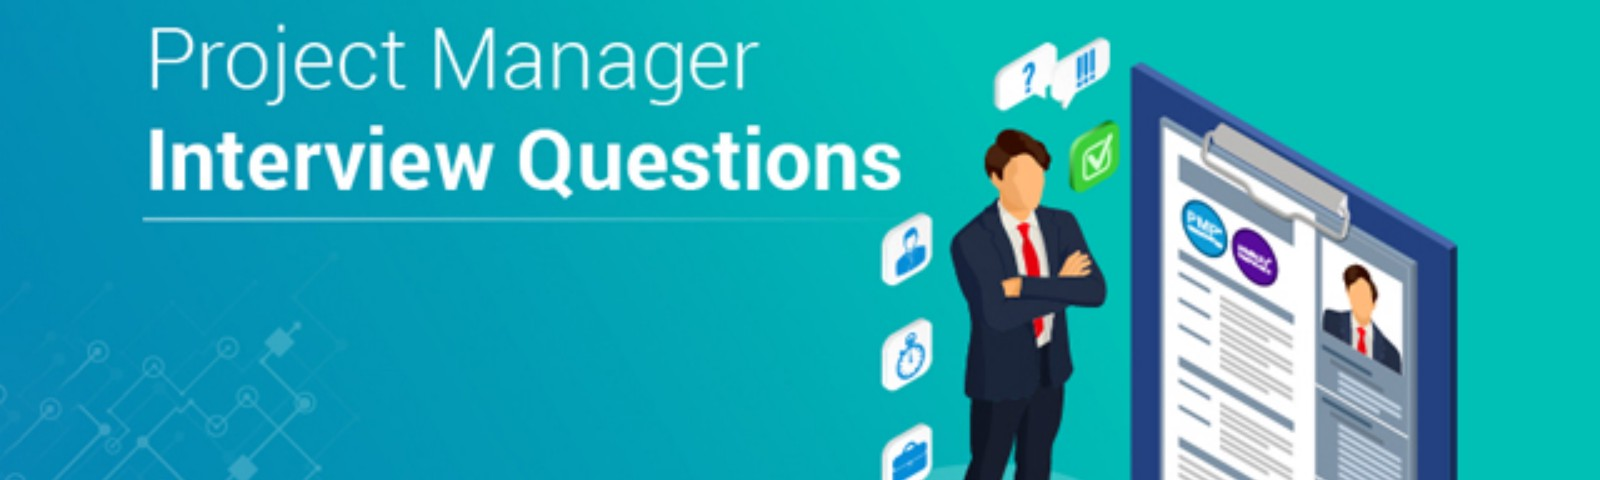 Top 30 Project Manager Interview Questions You Need to Know